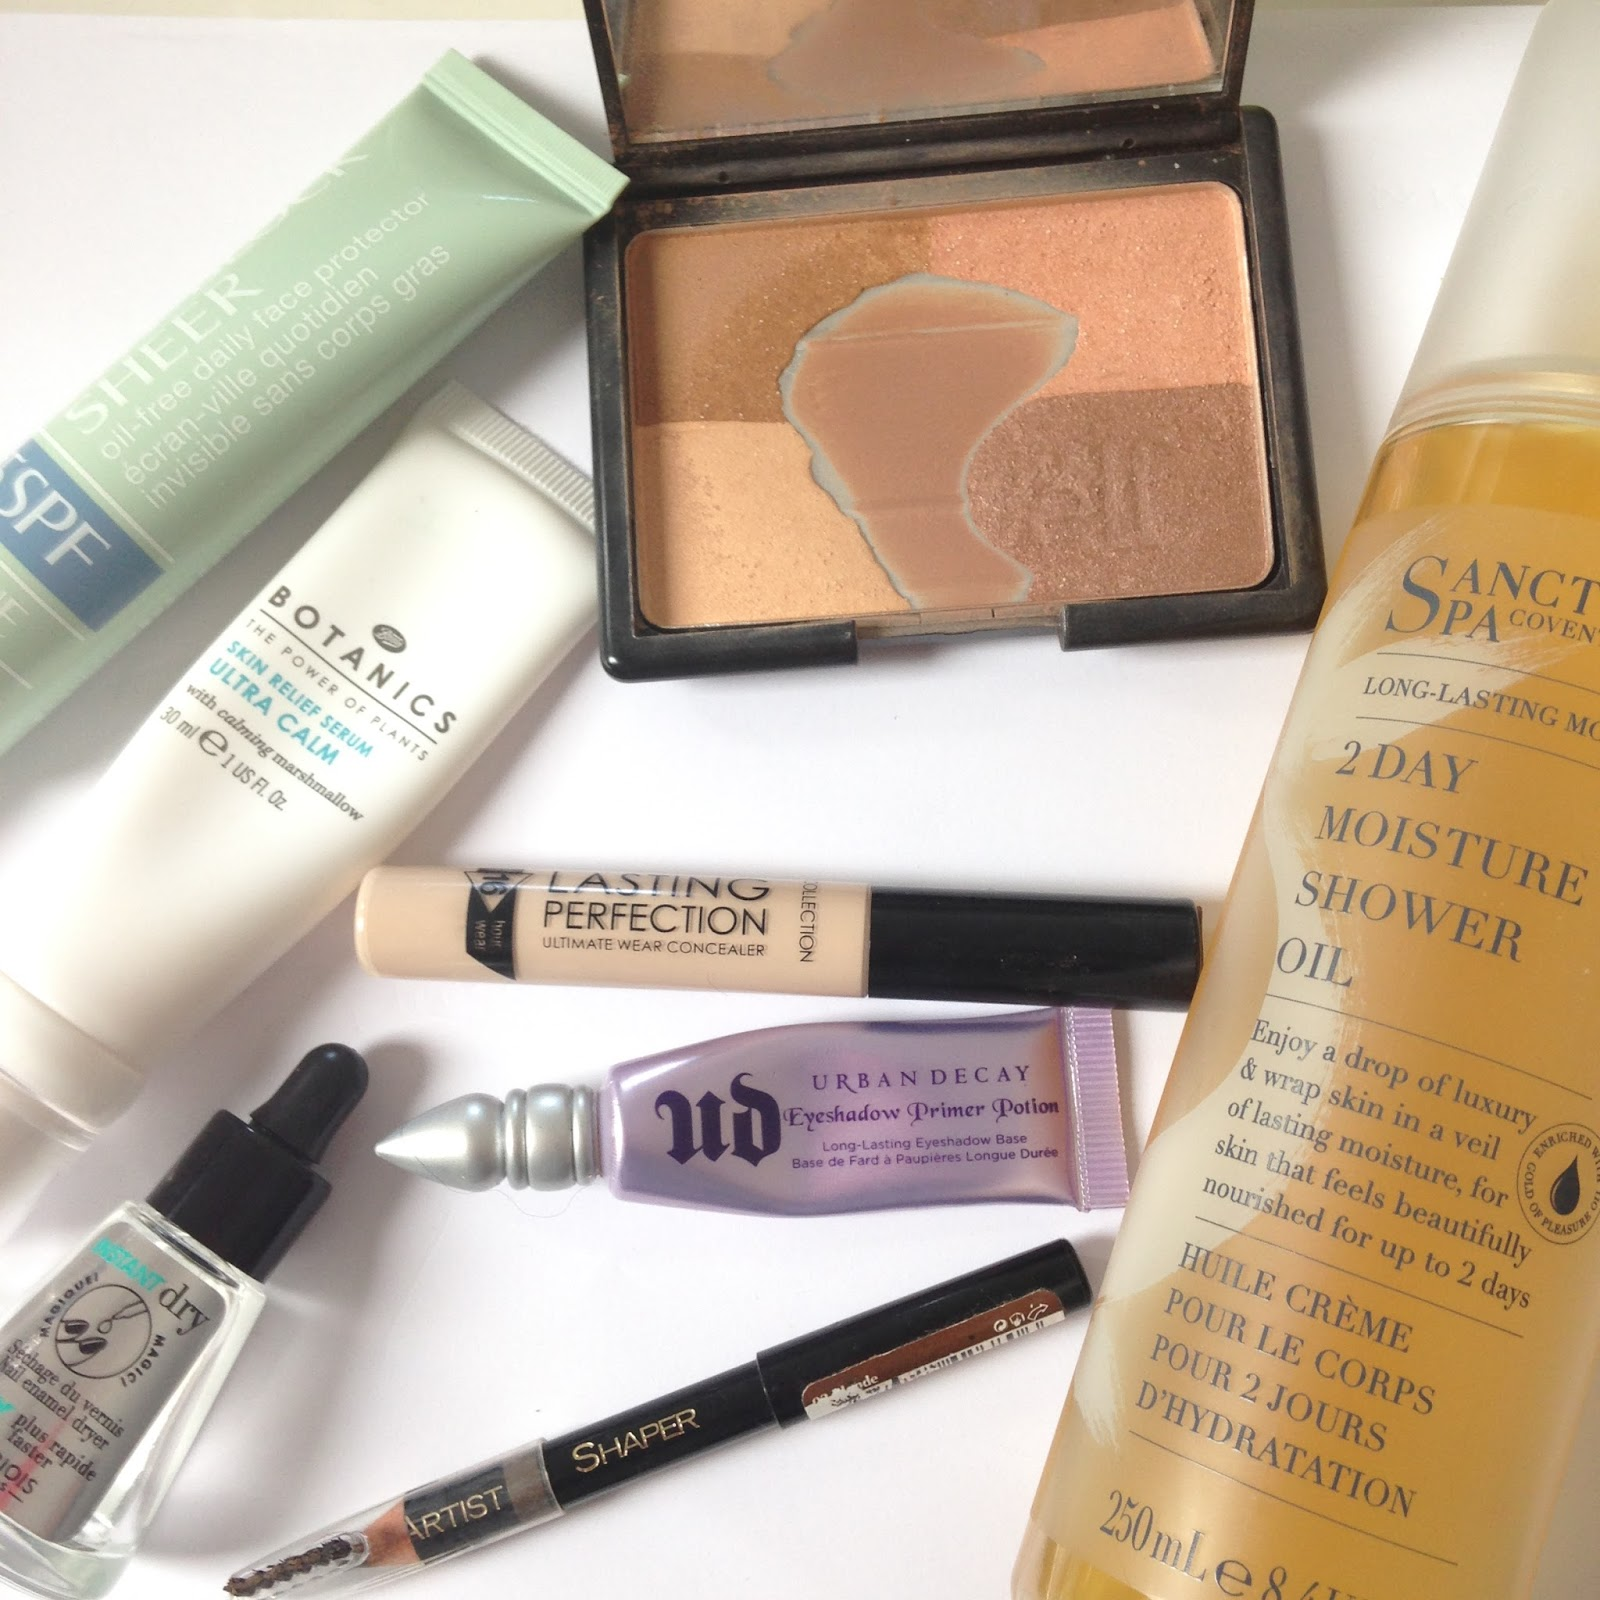 The repurchased beauty products